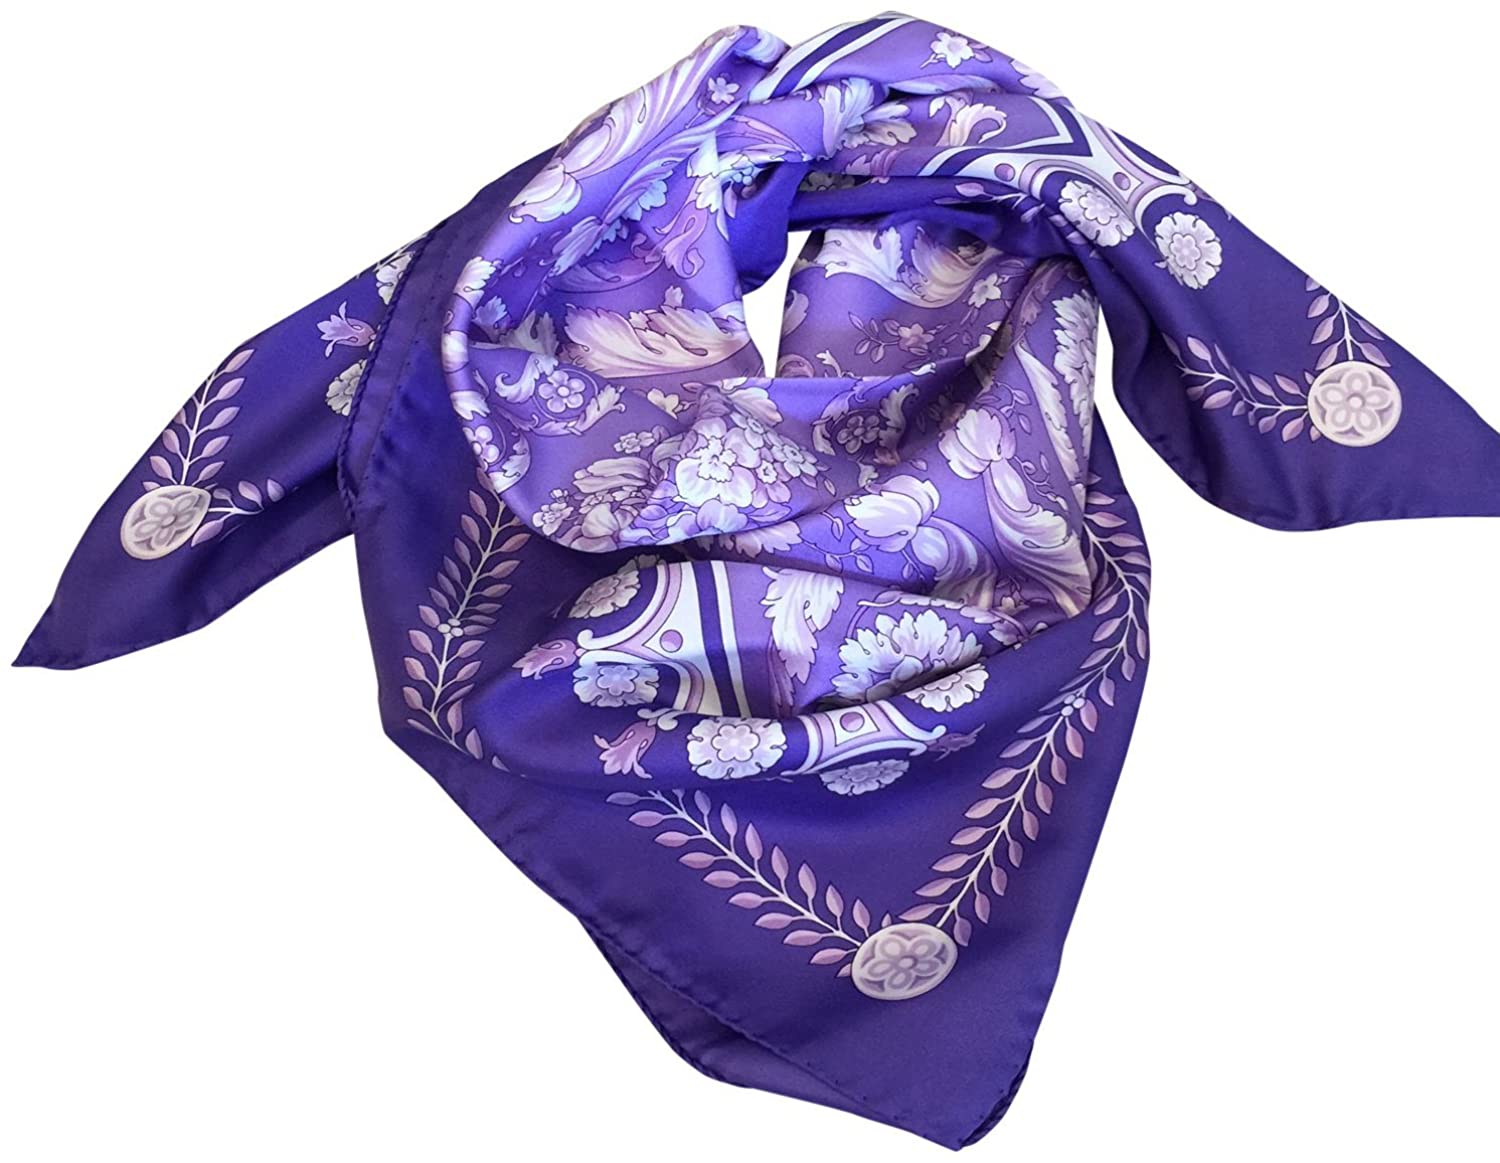 Versace 100% Silk Foulard Square Scarf Purple White at Amazon Womens Clothing store: